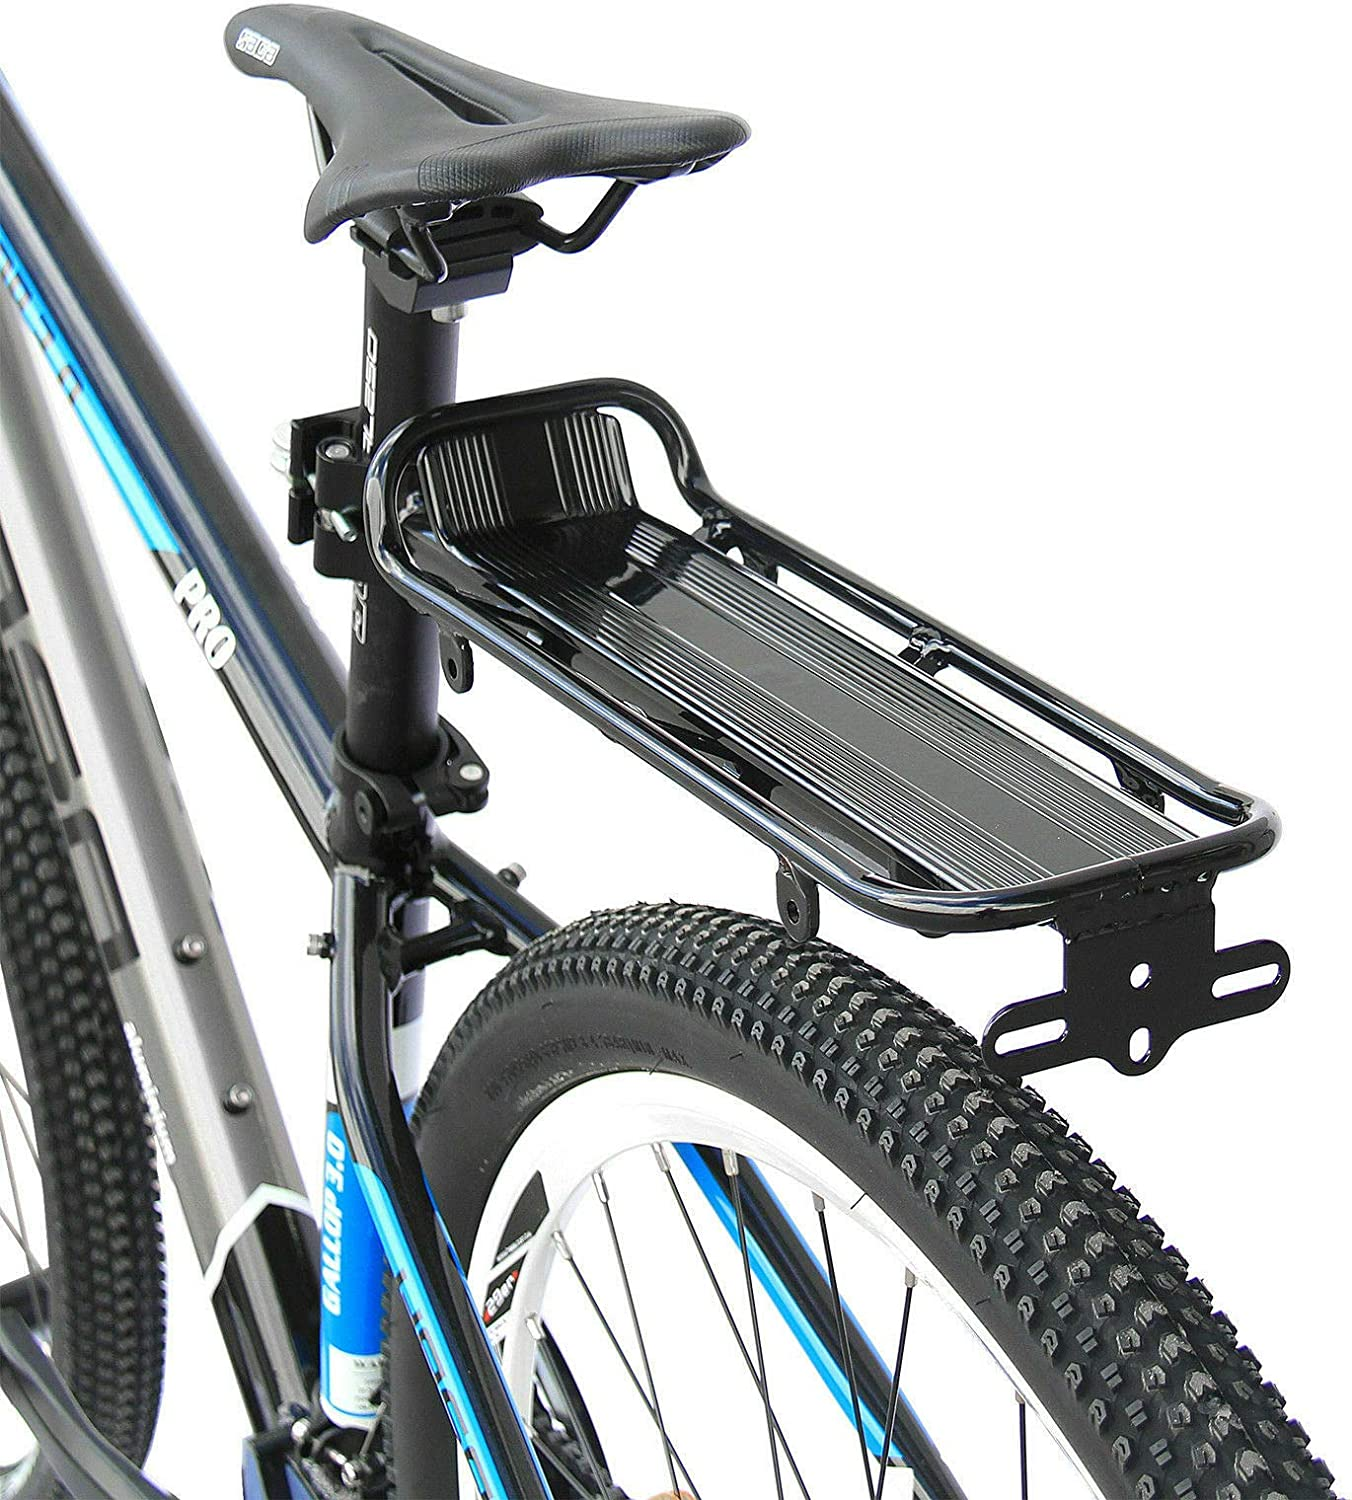 CyclingDeal Bicycle Bike Quick Release Alloy Seatpost Mount Rear Rack Carrier